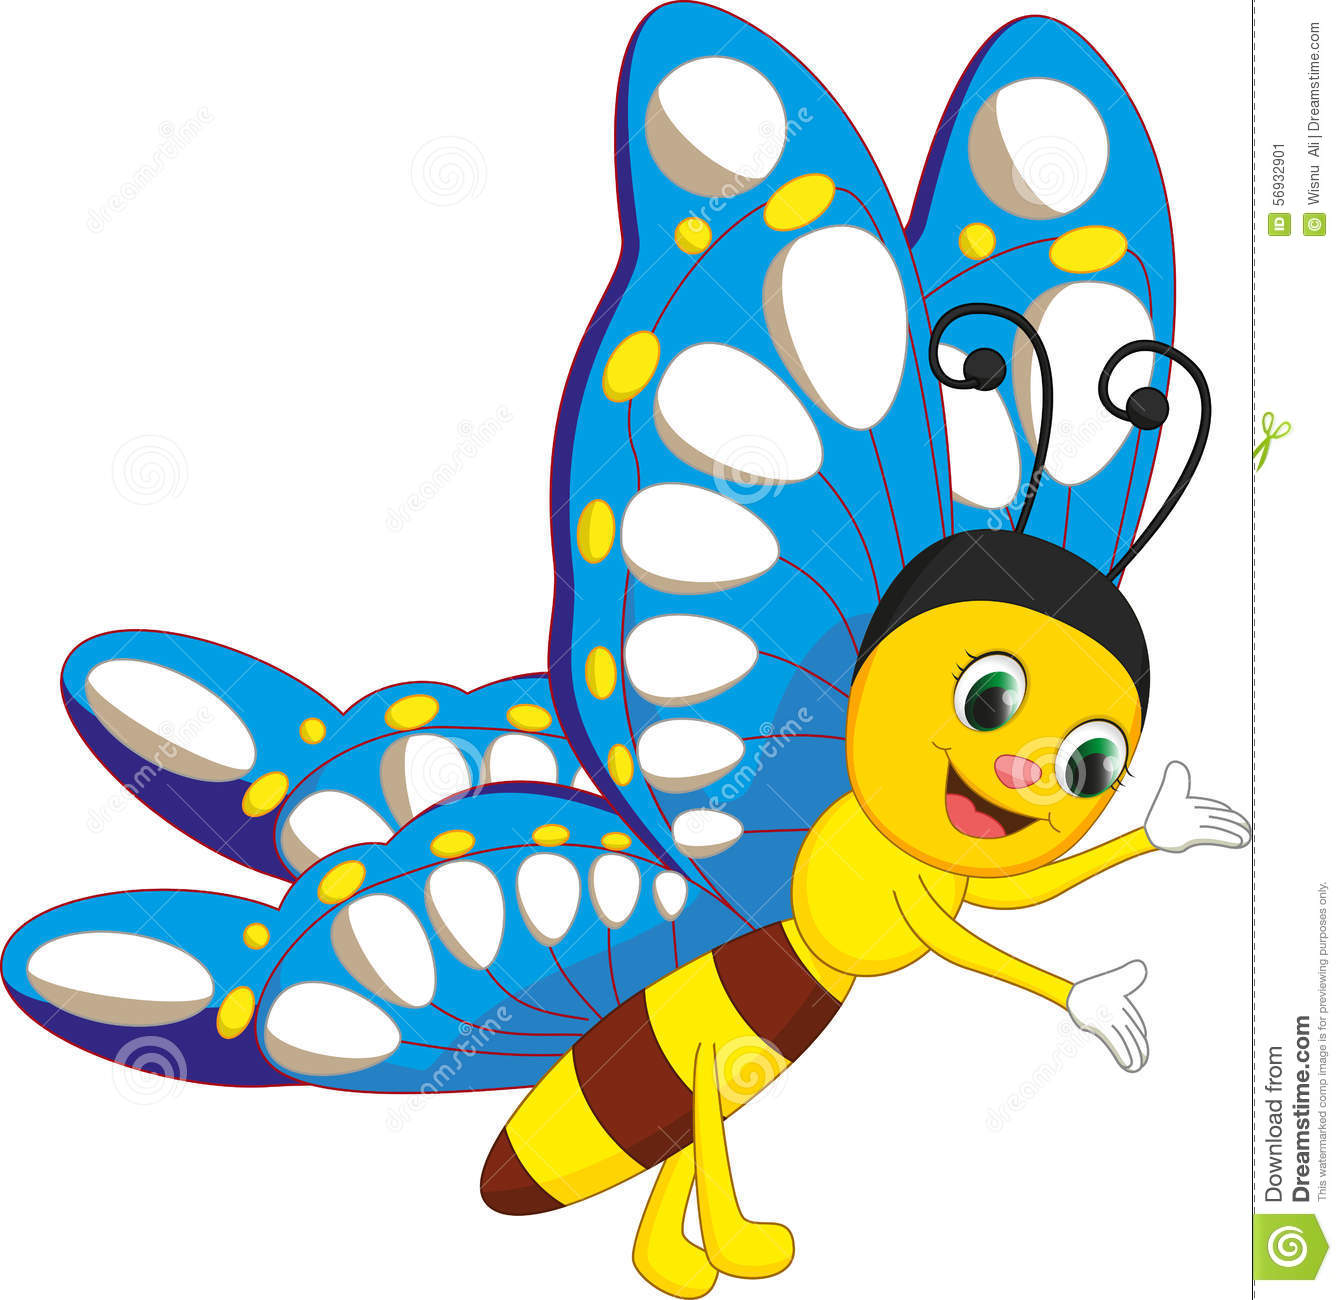 1342x1300 Odd Butterfly Cartoon Pictures Clipart Best Butterfly S